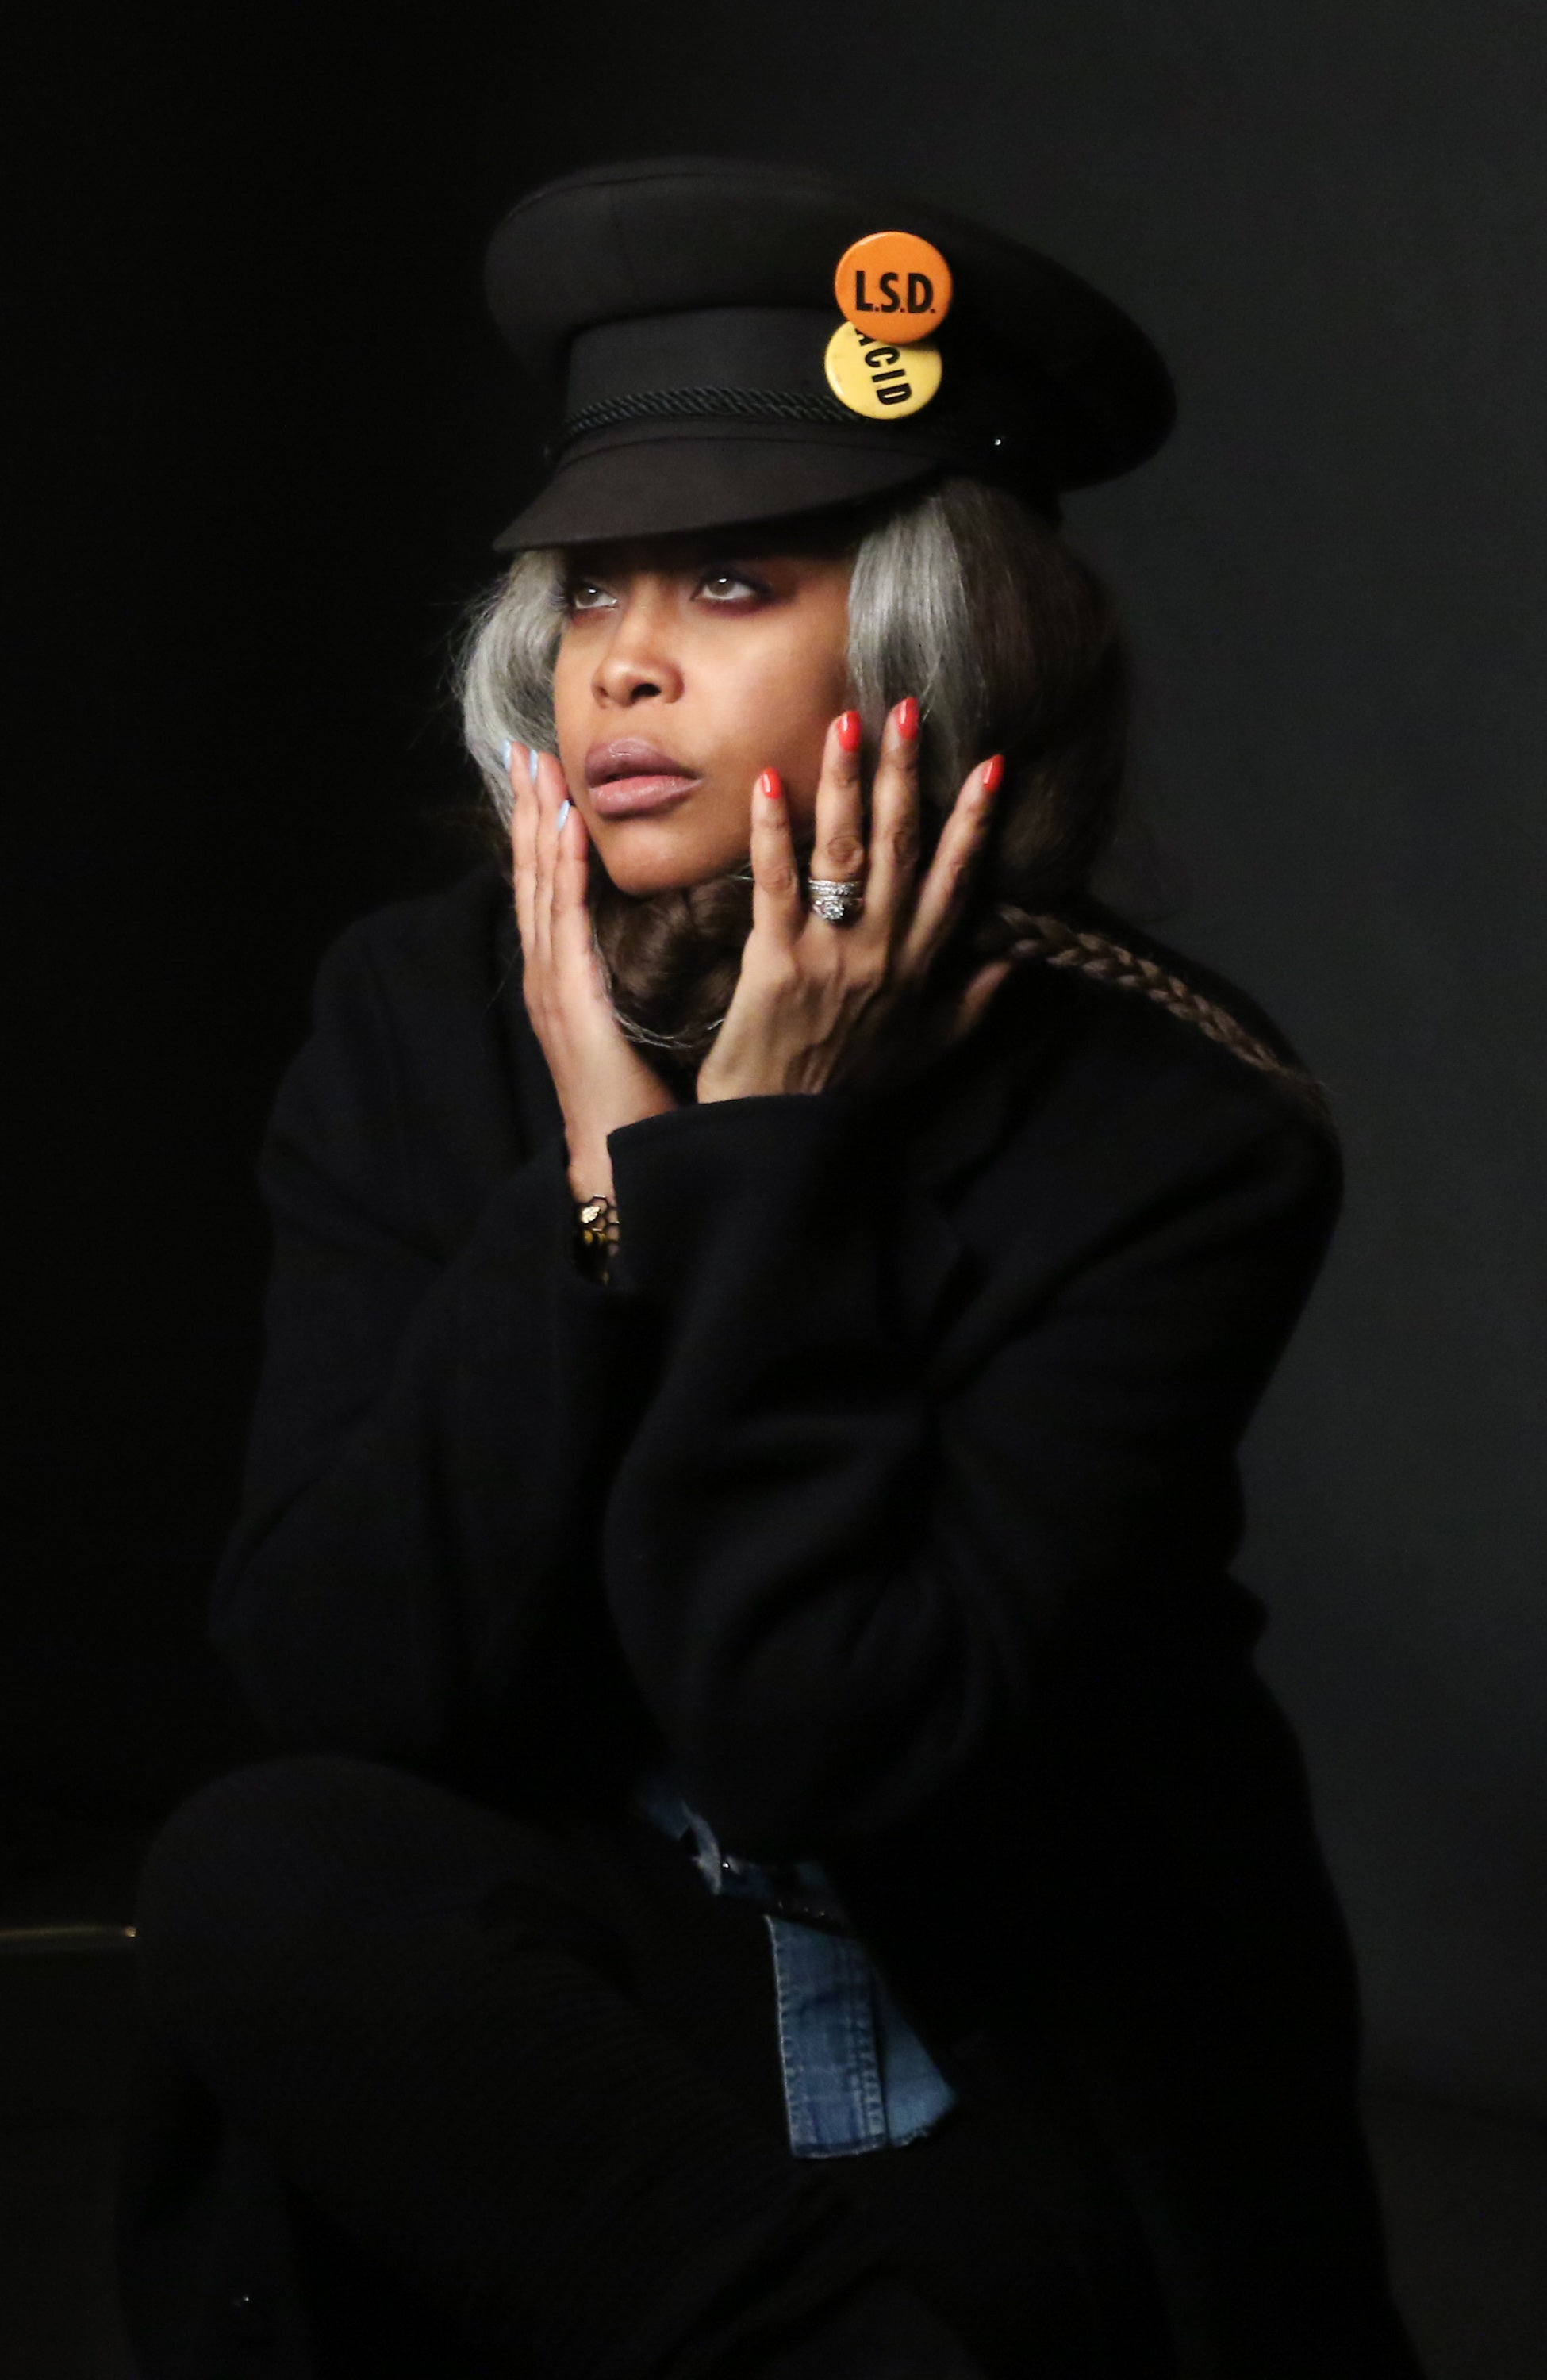 Erykah Badu Held A Twitter Q&A On Relationships And We Are Here For Her Gems!